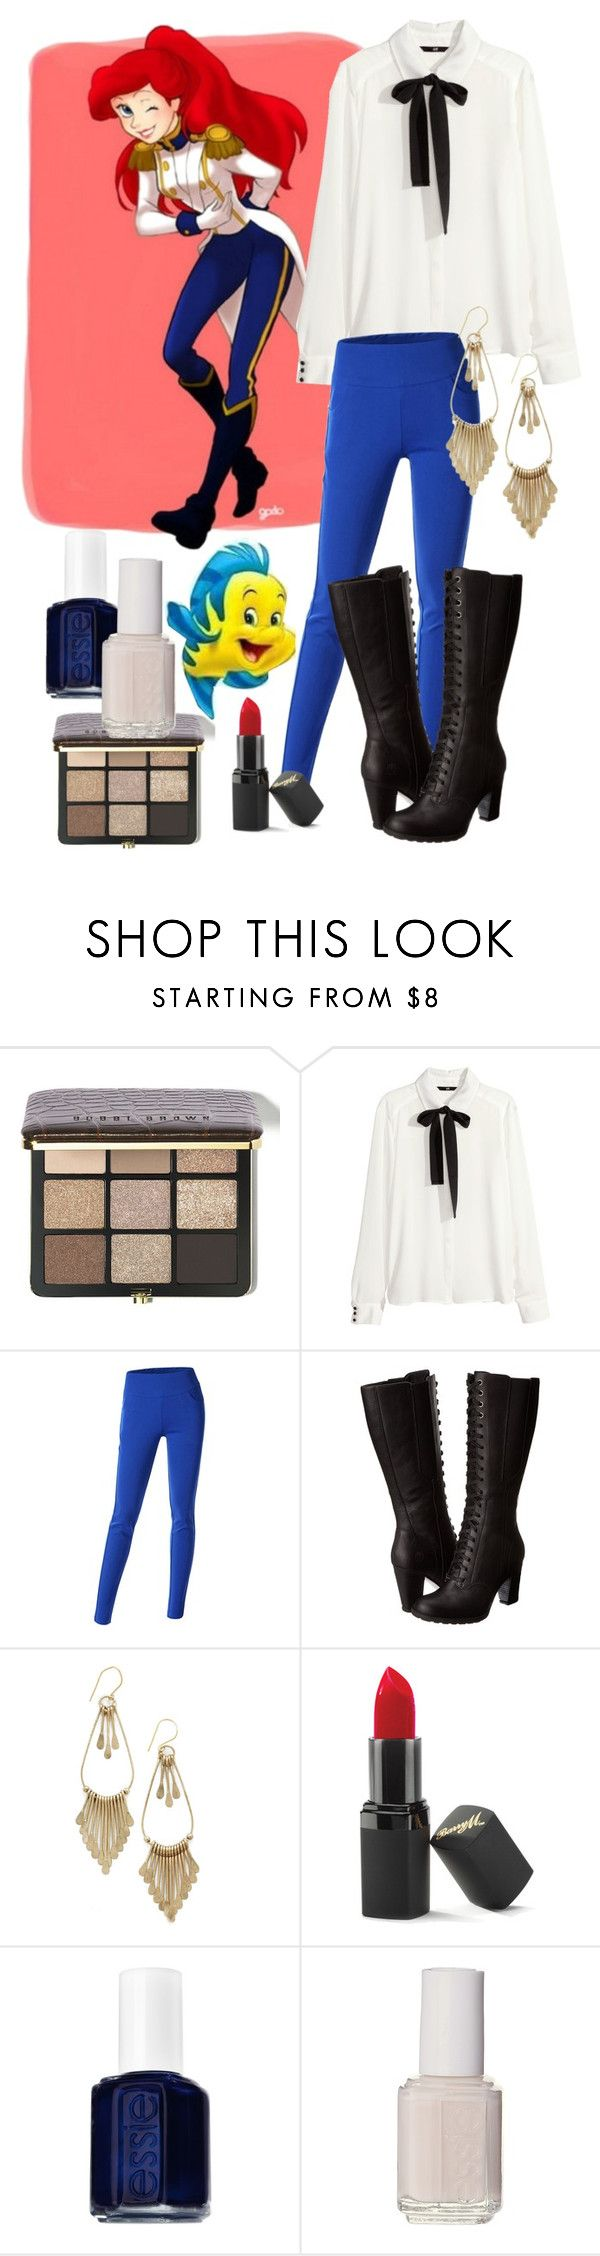 """""""Modern Ariele - Prince Erik's style"""" by catherinetabor ❤ liked on Polyvore featuring Bobbi Brown Cosmetics, Disney, H&M, Doublju, Timberland, Barry M, Essie and modern"""